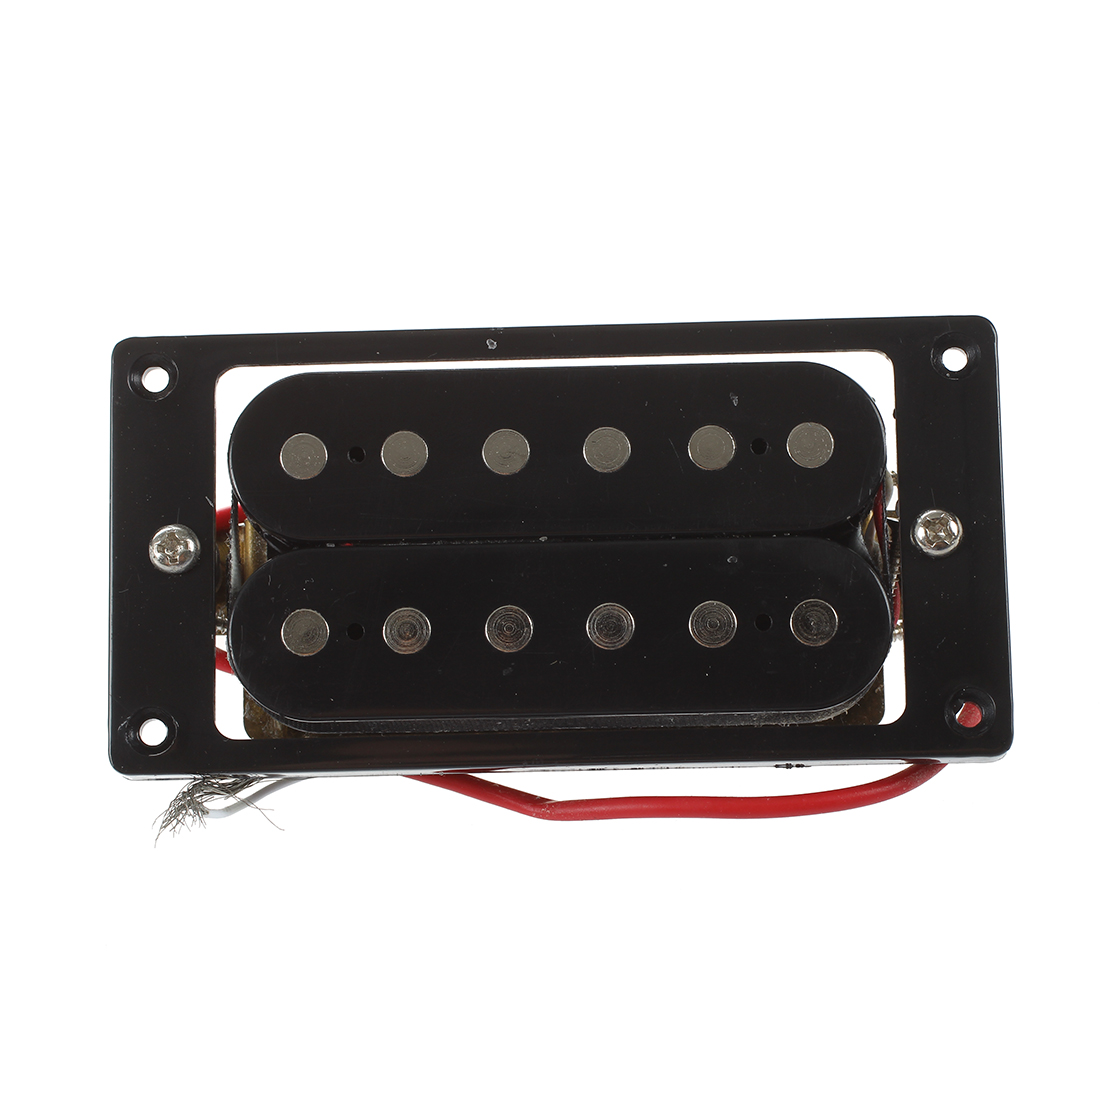 HOT 2PCs(1 set)Black Humbucker Double Coil Electric Guitar Pickups + Frame Screw 1 set of 2 one black one yellow humbucker double coil electric guitar pickups